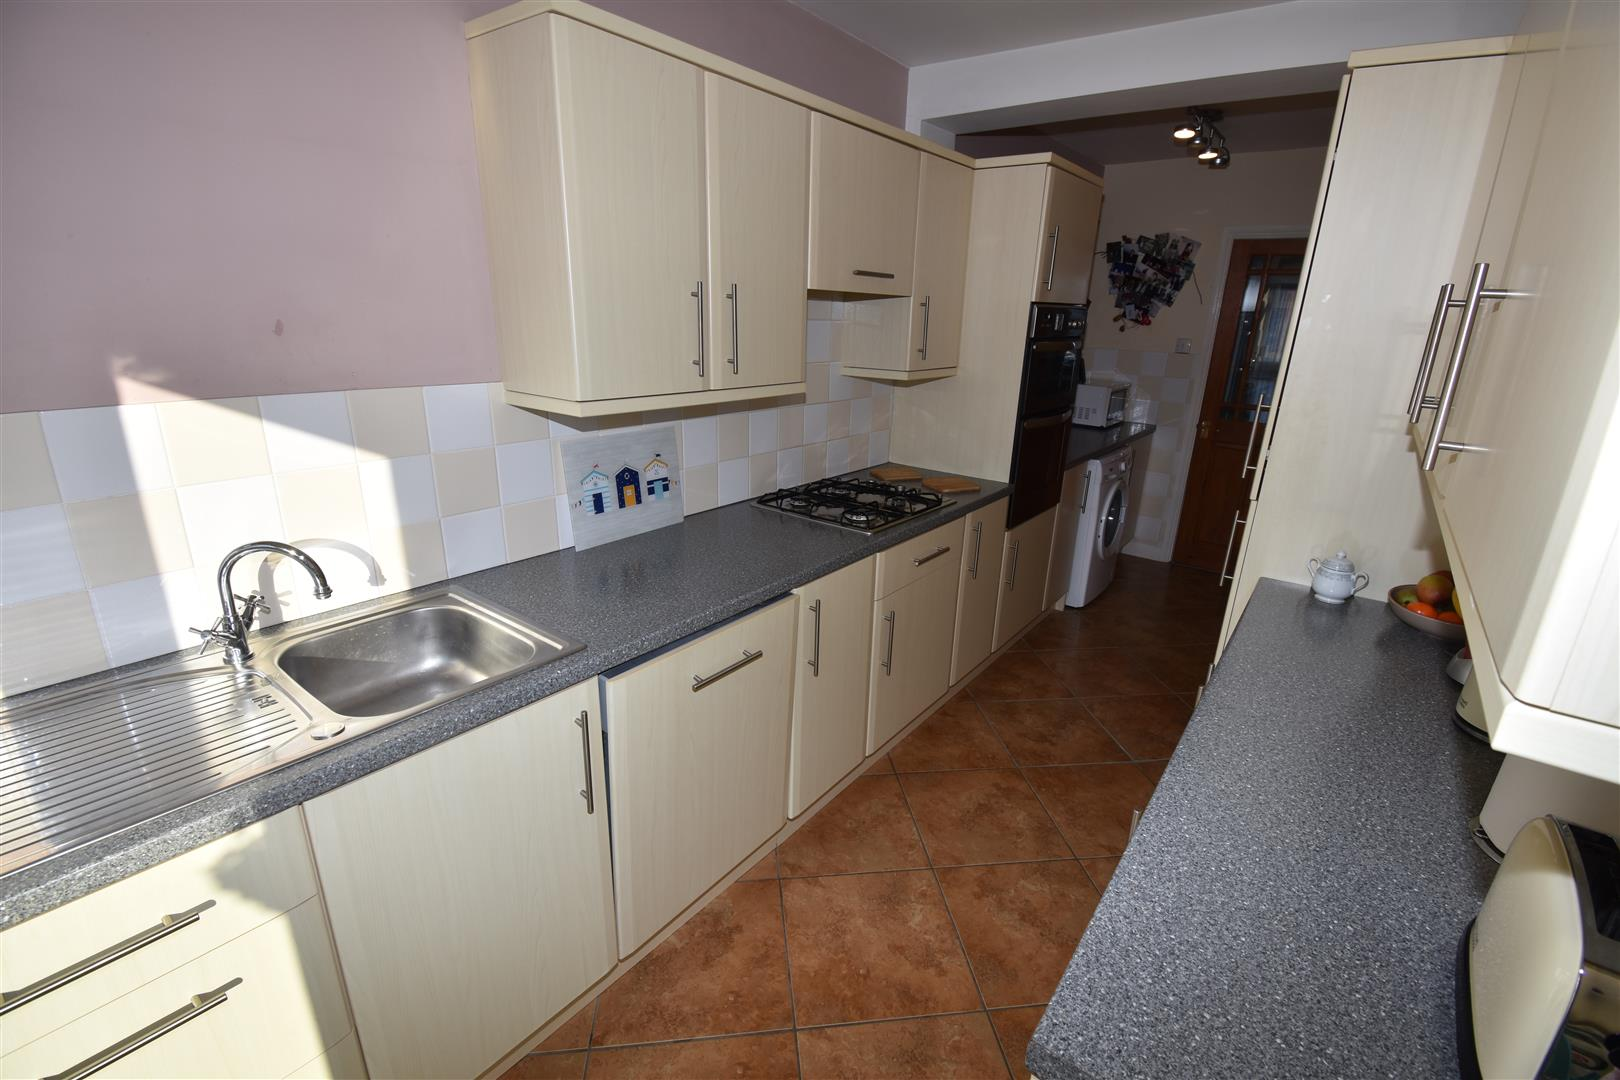 3 bed house for sale in Bromford Road, Hodge Hill, Birmingham B36 8HR 7